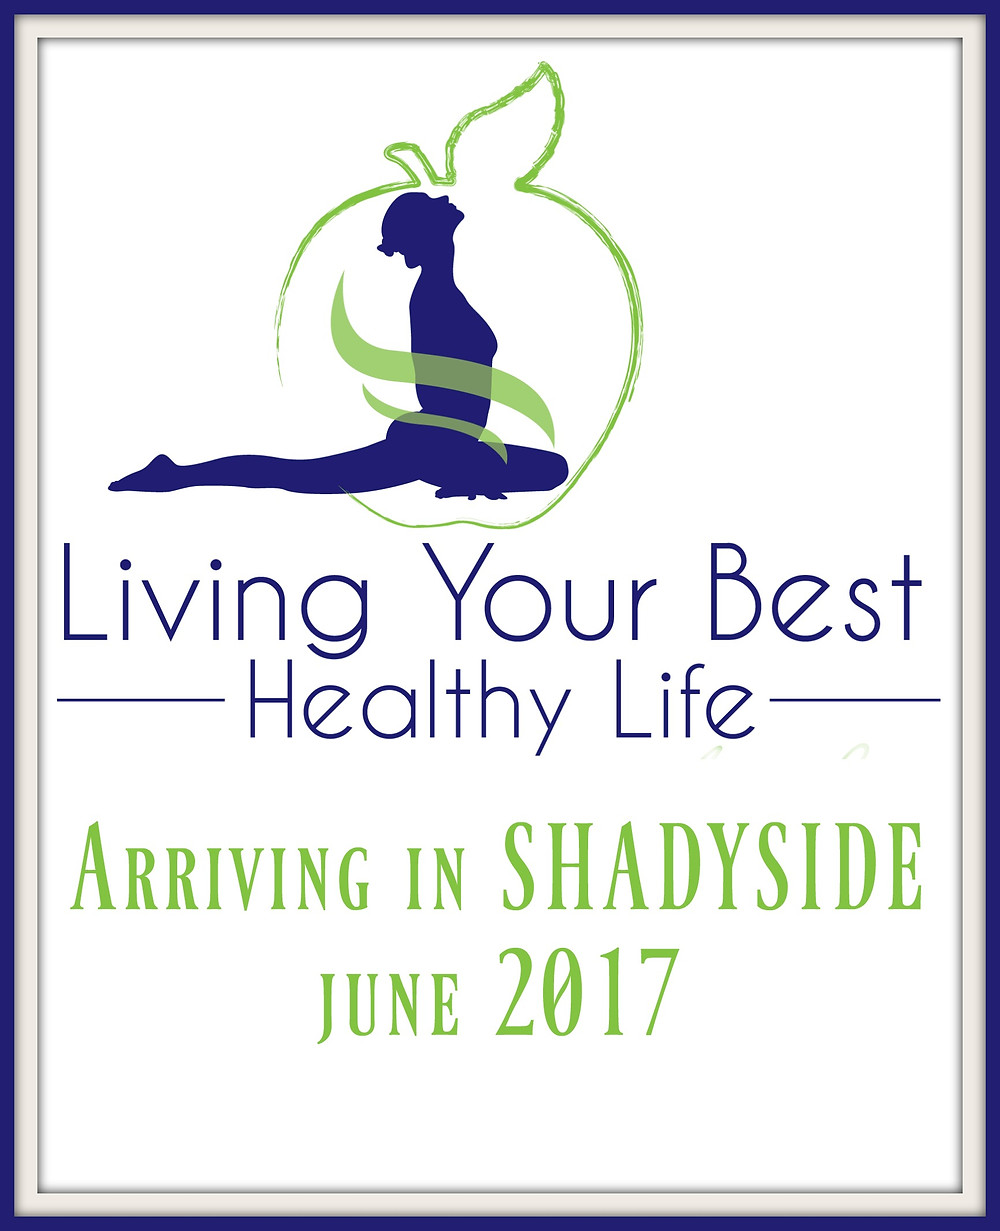 Living Your Best Healthy Life | Shadyside